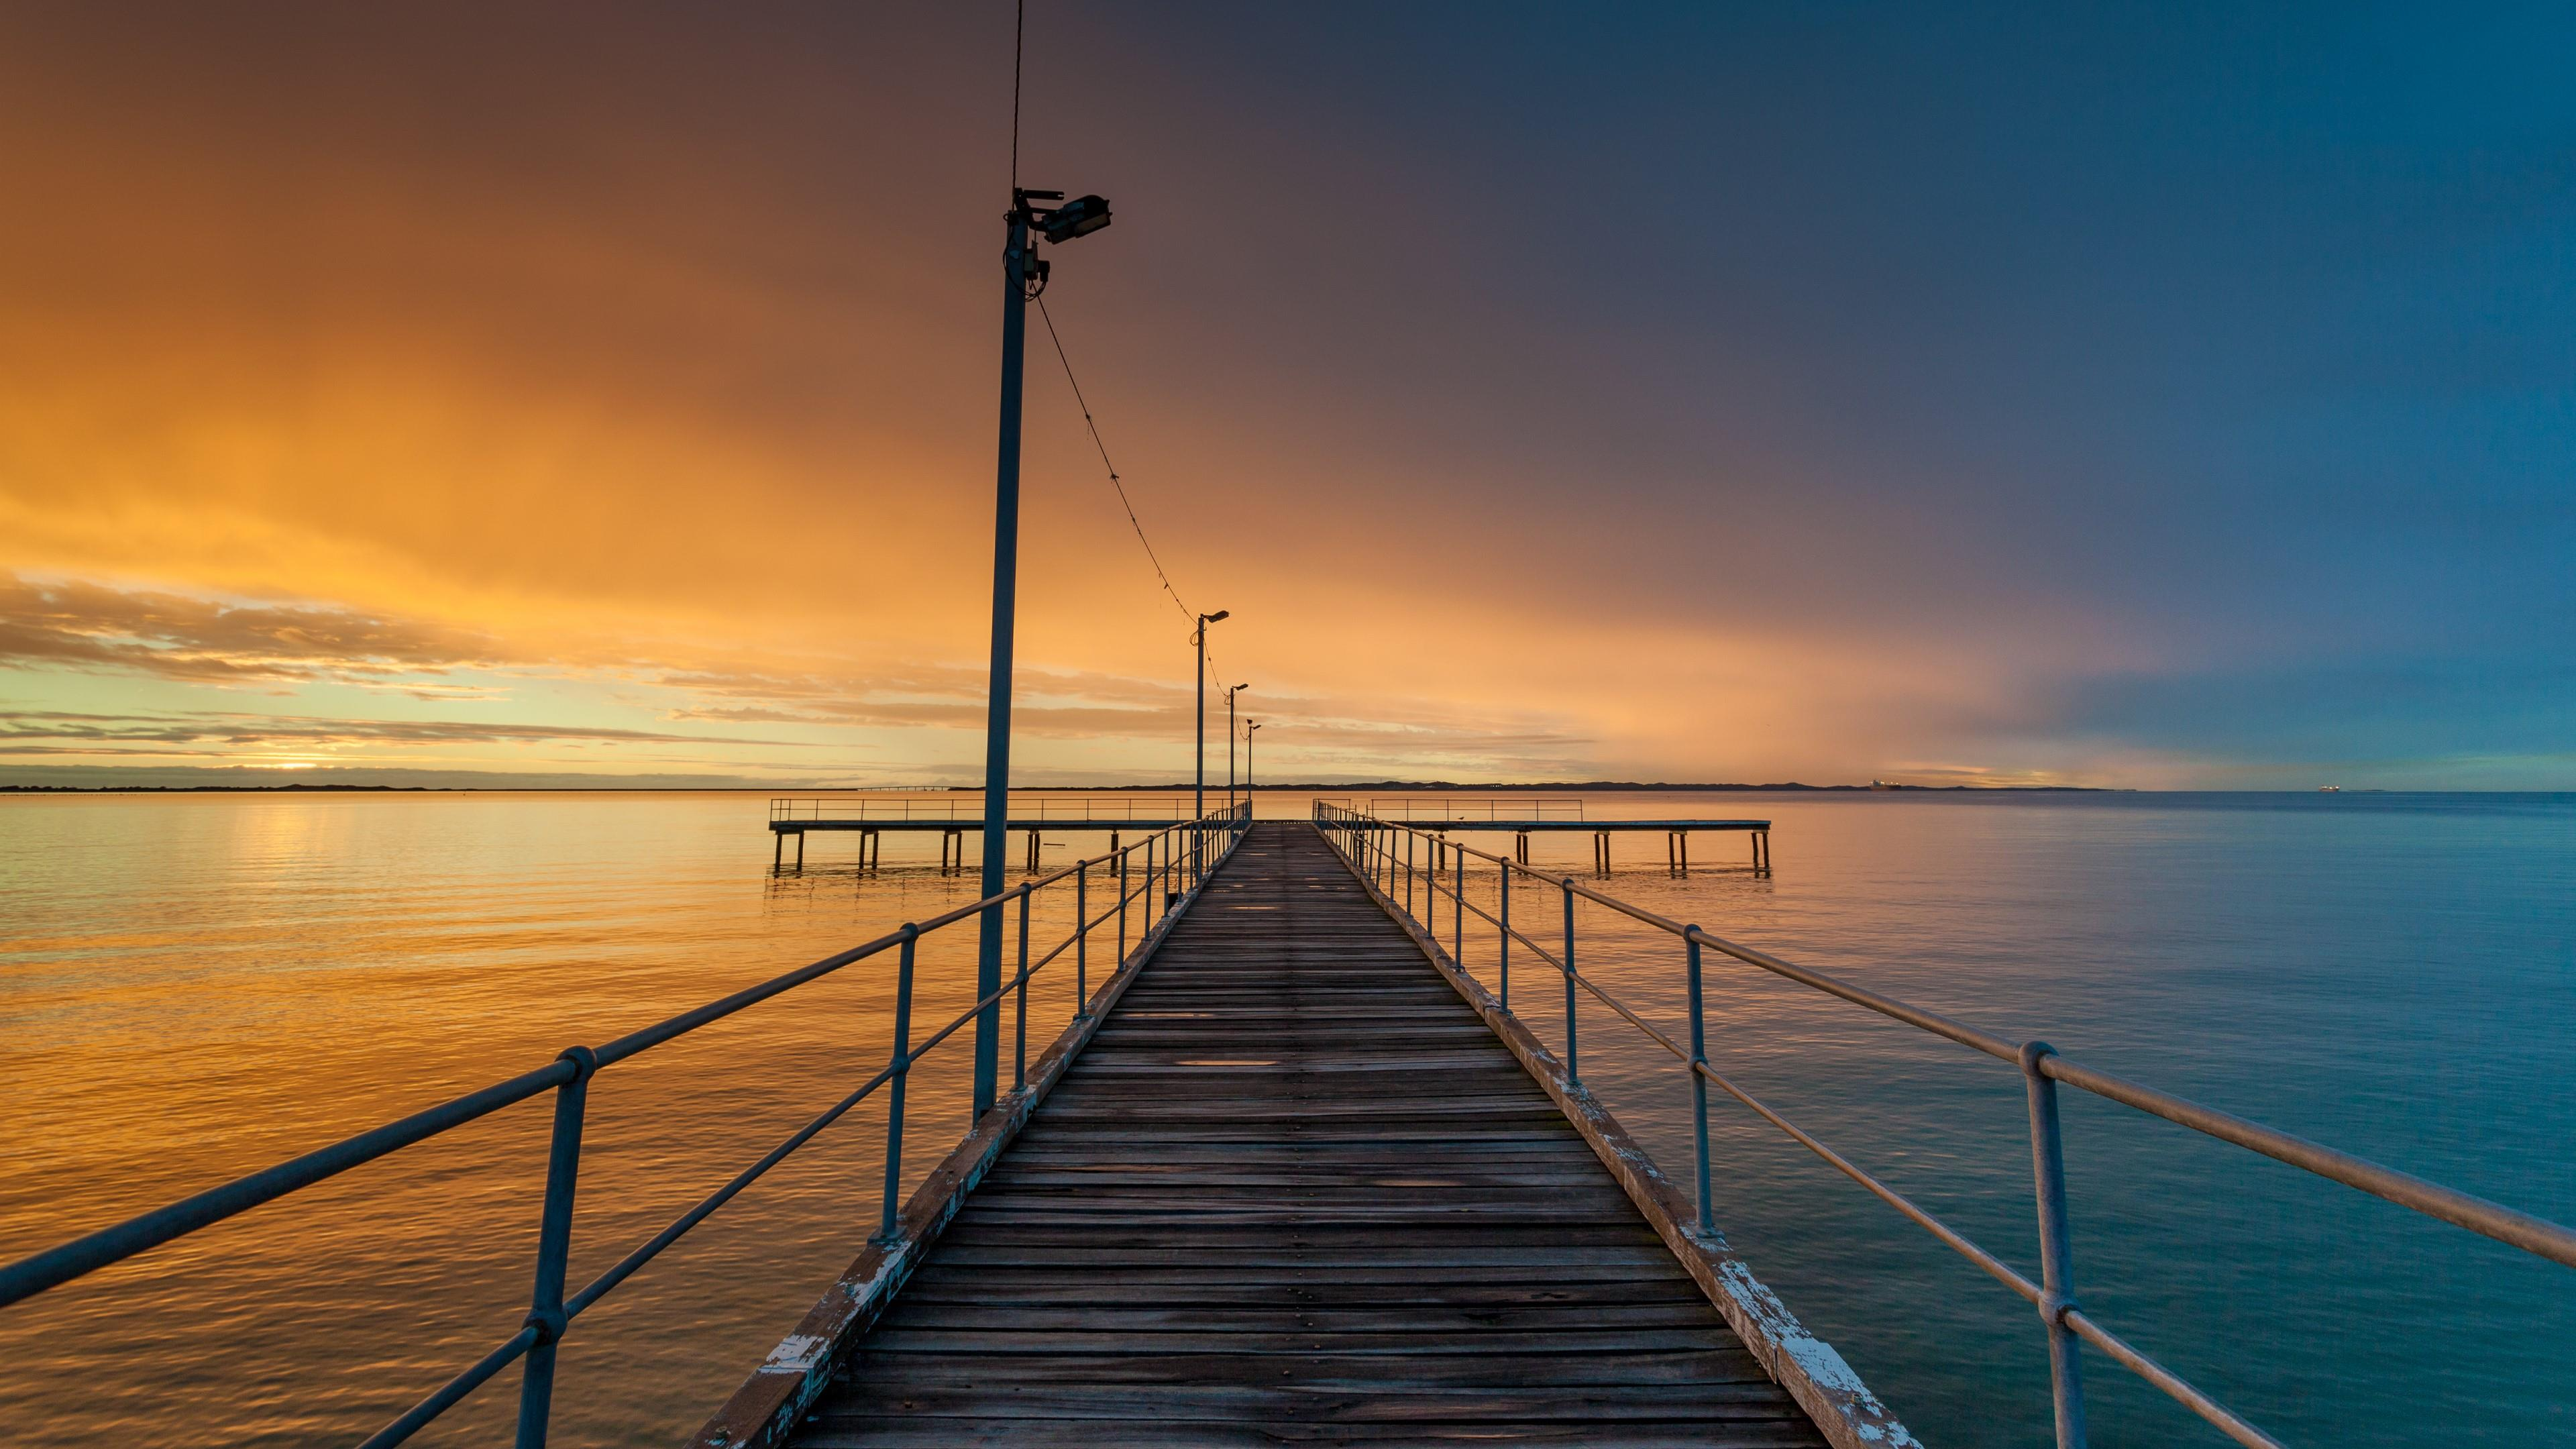 Sunset at the fishing pier wallpaper